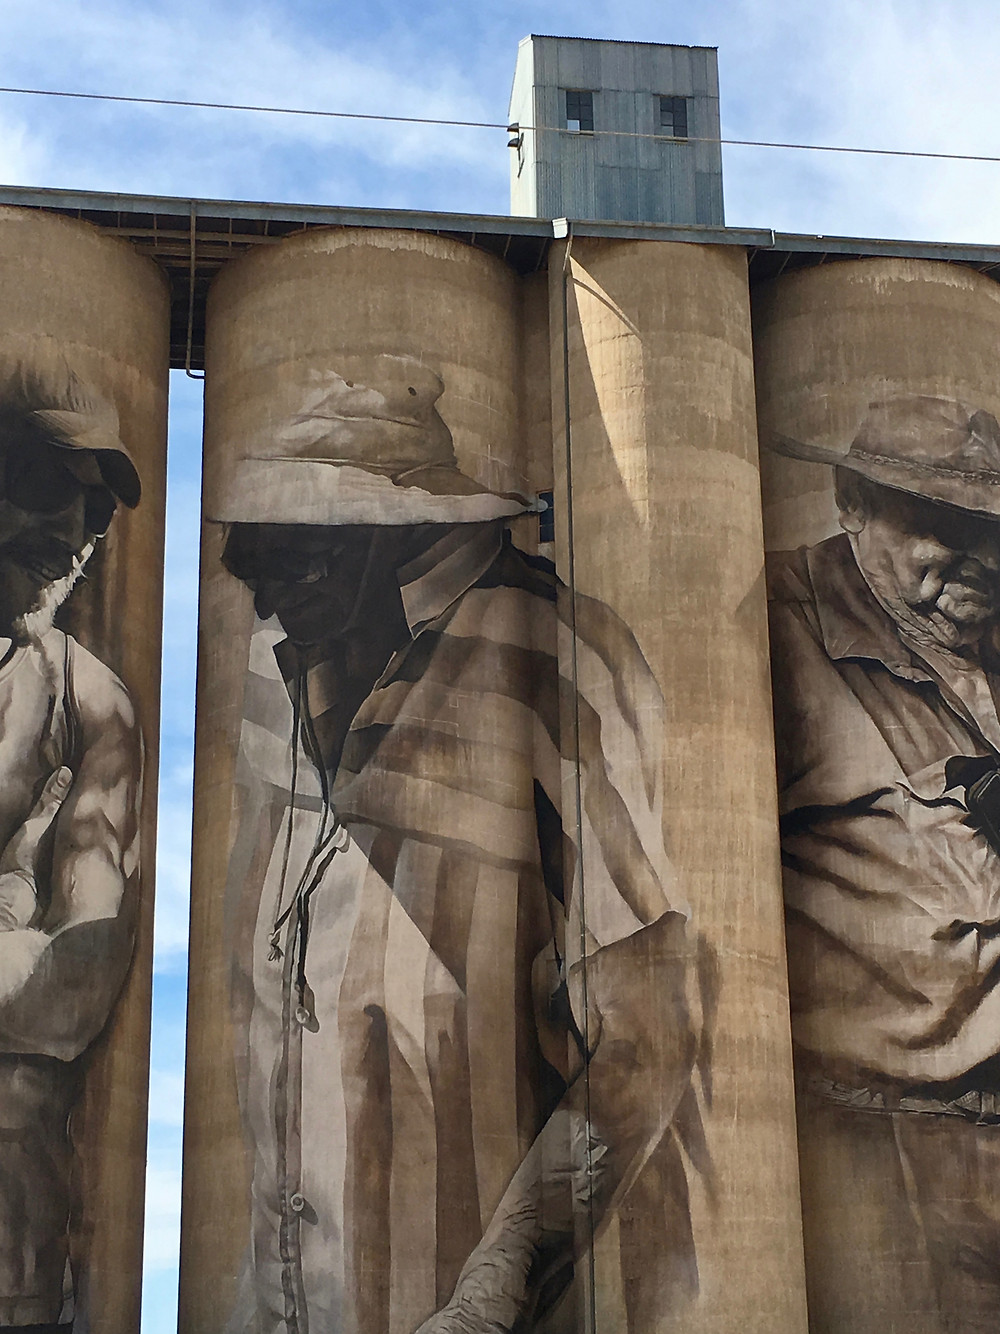 Mural painted on the side of a decommissioned wheat storage silo